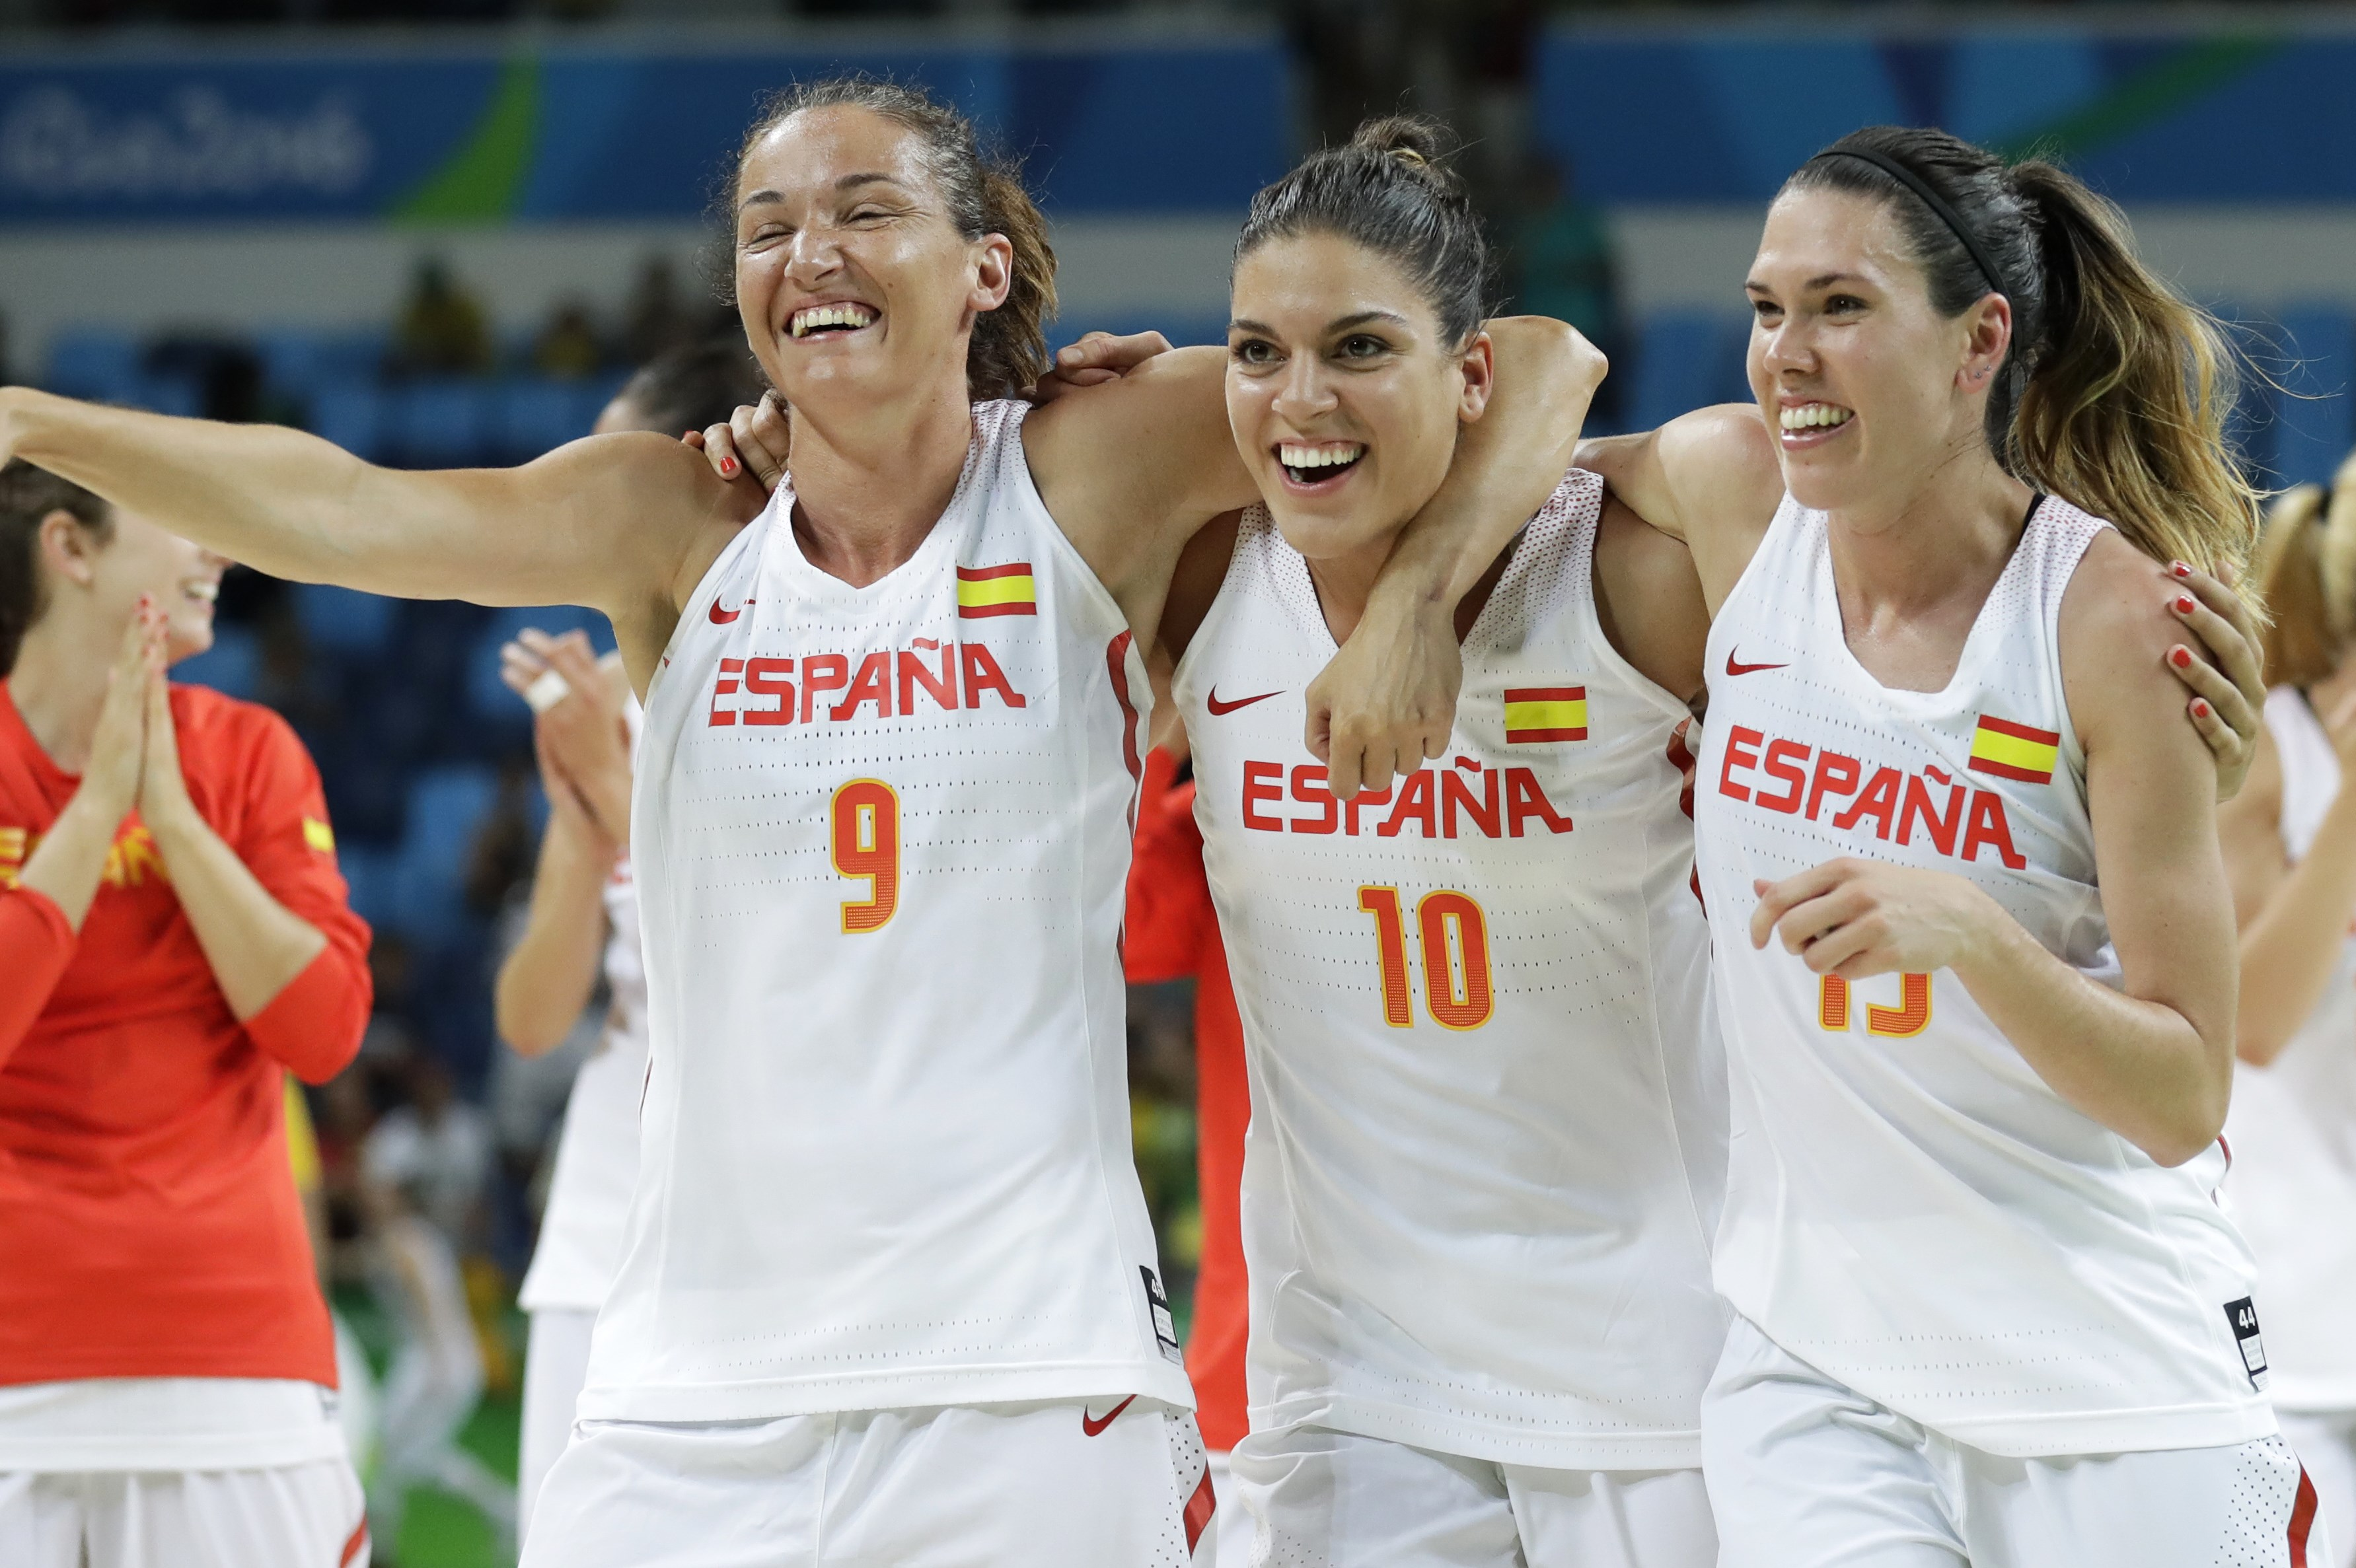 Spain's Laia Palau, from left, Marta Xargay and Anna Cruz celebrate after a quarterfinal round basketball game against Turkey at the 2016 Summer Olympics in Rio de Janeiro, Brazil, Tuesday, Aug. 16, 2016. (AP Photo/Charlie Neibergall)